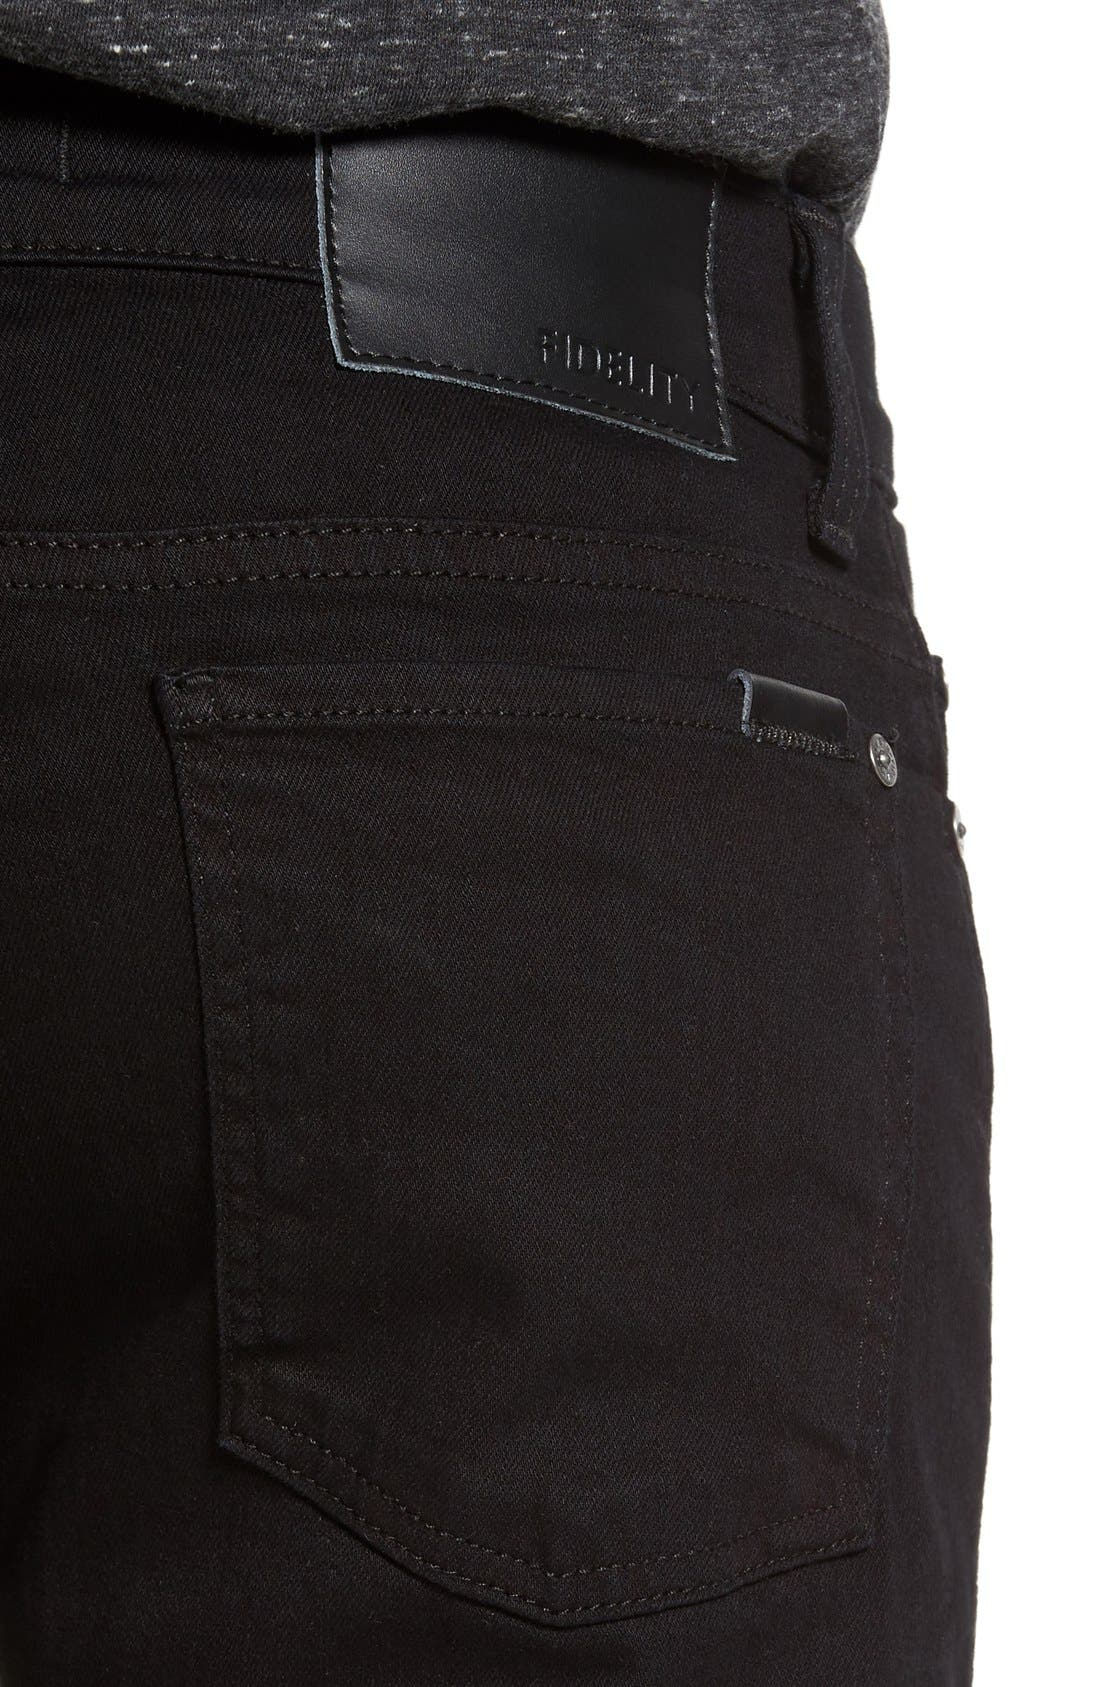 Alternate Image 4  - Fidelity Denim Vantage Skinny Fit Jeans (Ever Black)